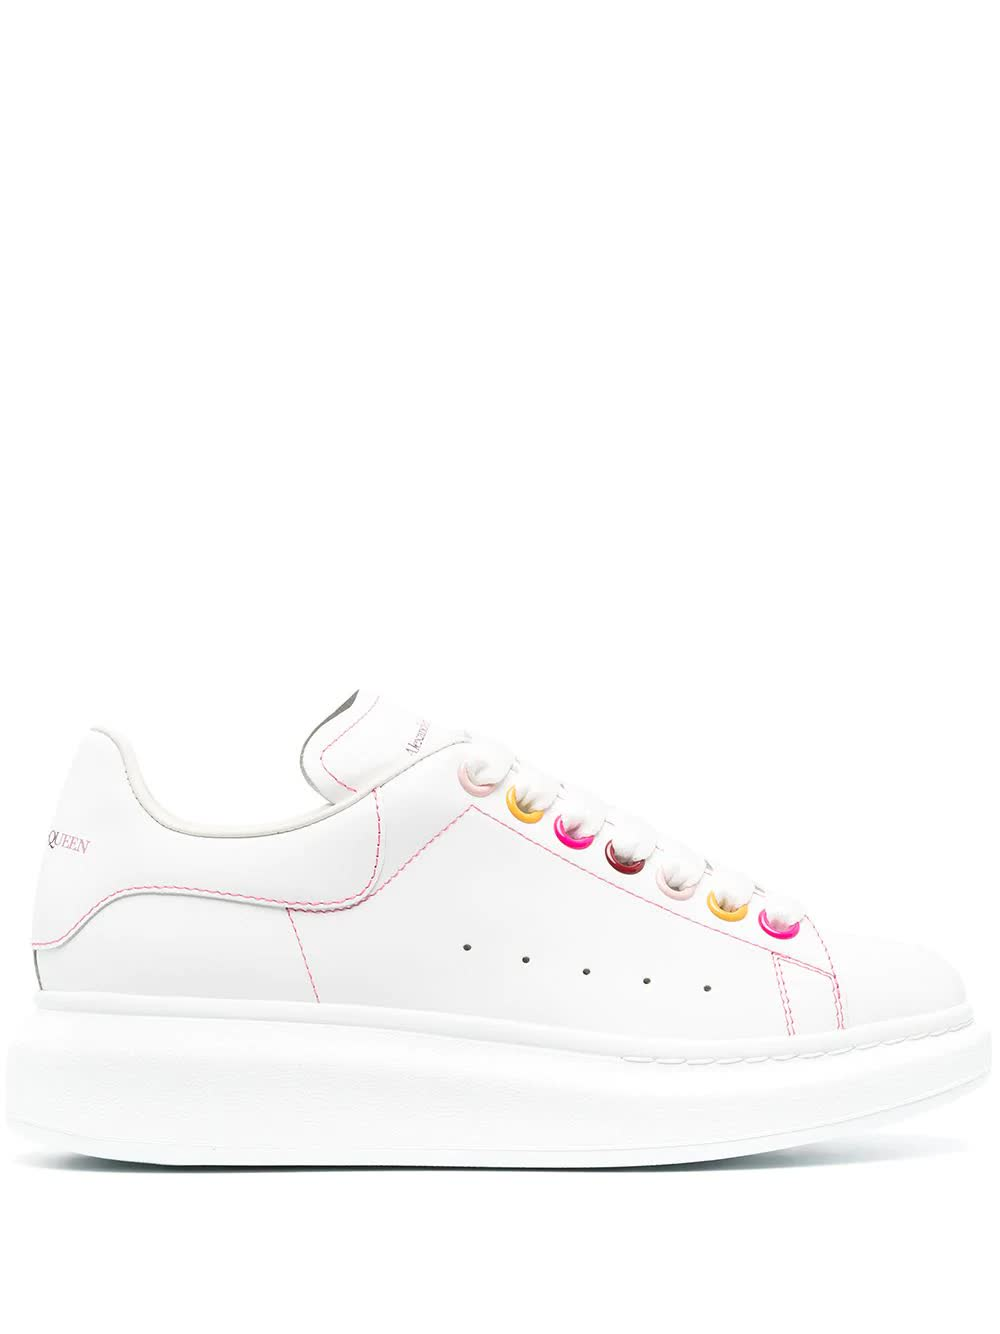 Buy Alexander McQueen Woman White Oversize Sneakers With Multicolor Eyelets online, shop Alexander McQueen shoes with free shipping